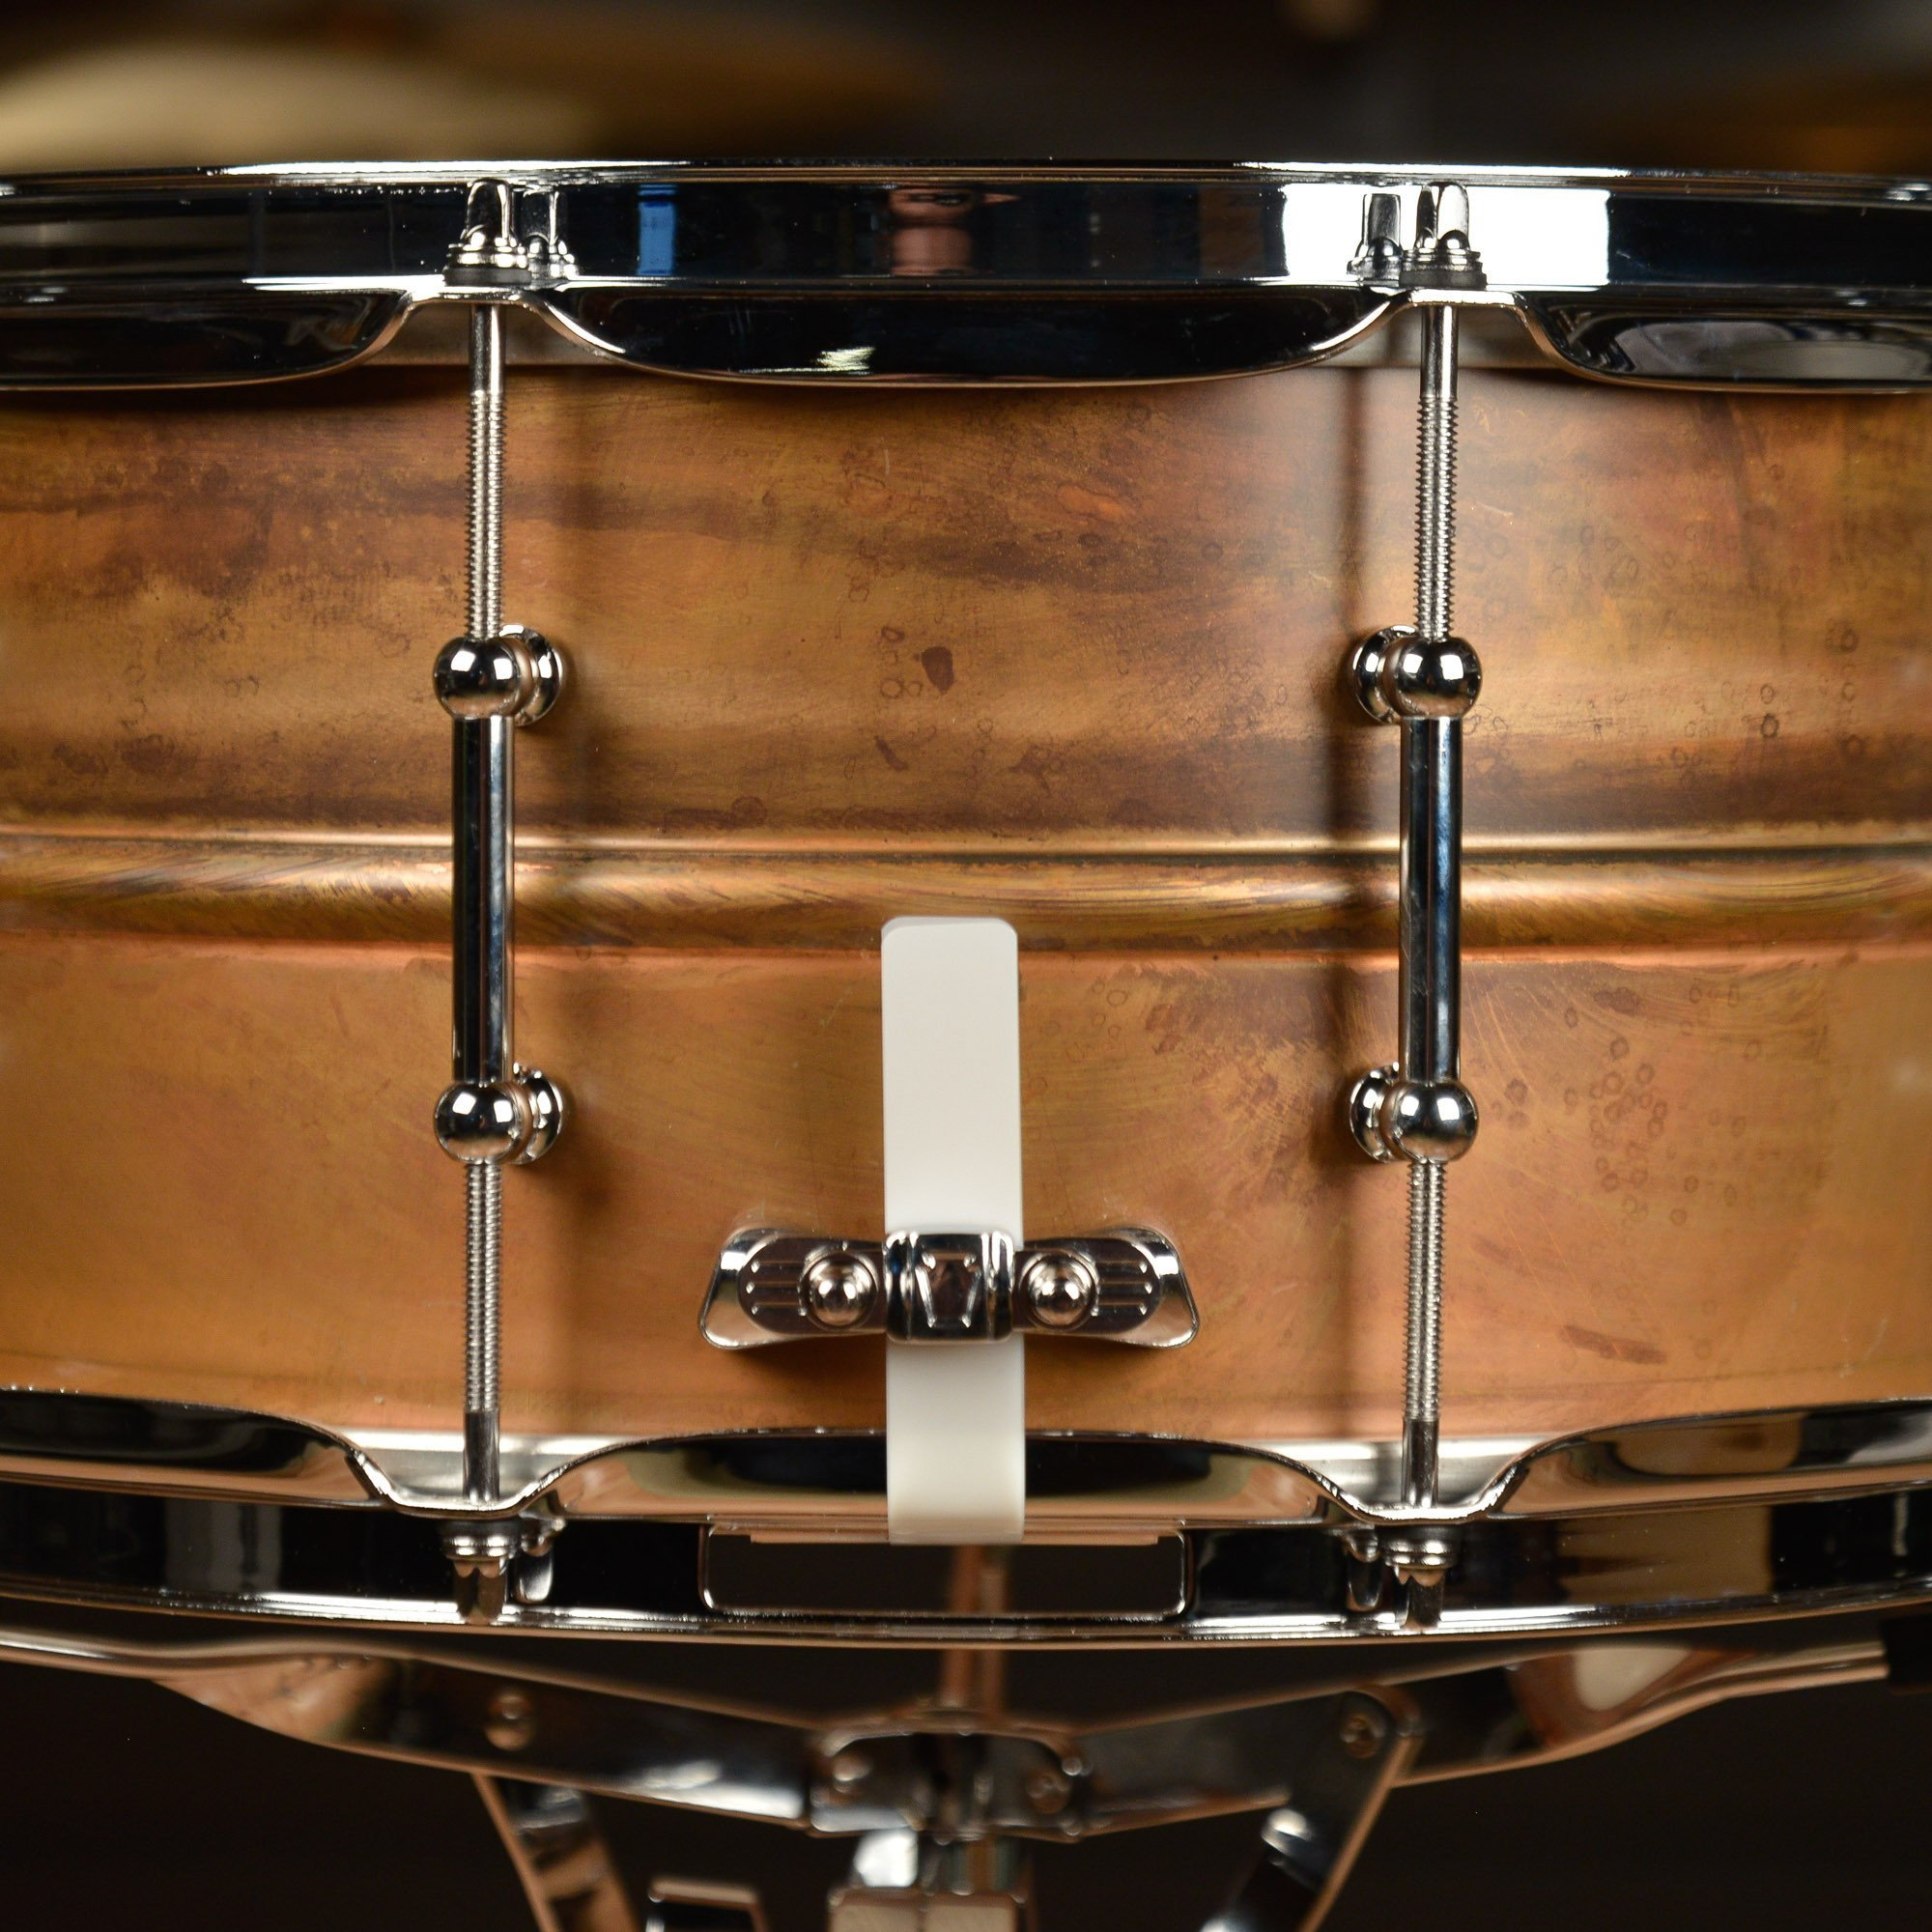 Ludwig Copper Phonic Smooth Snare Drum 14 x 6.5 in. Raw Smooth Finish with Tube Lugs by Ludwig (Image #5)